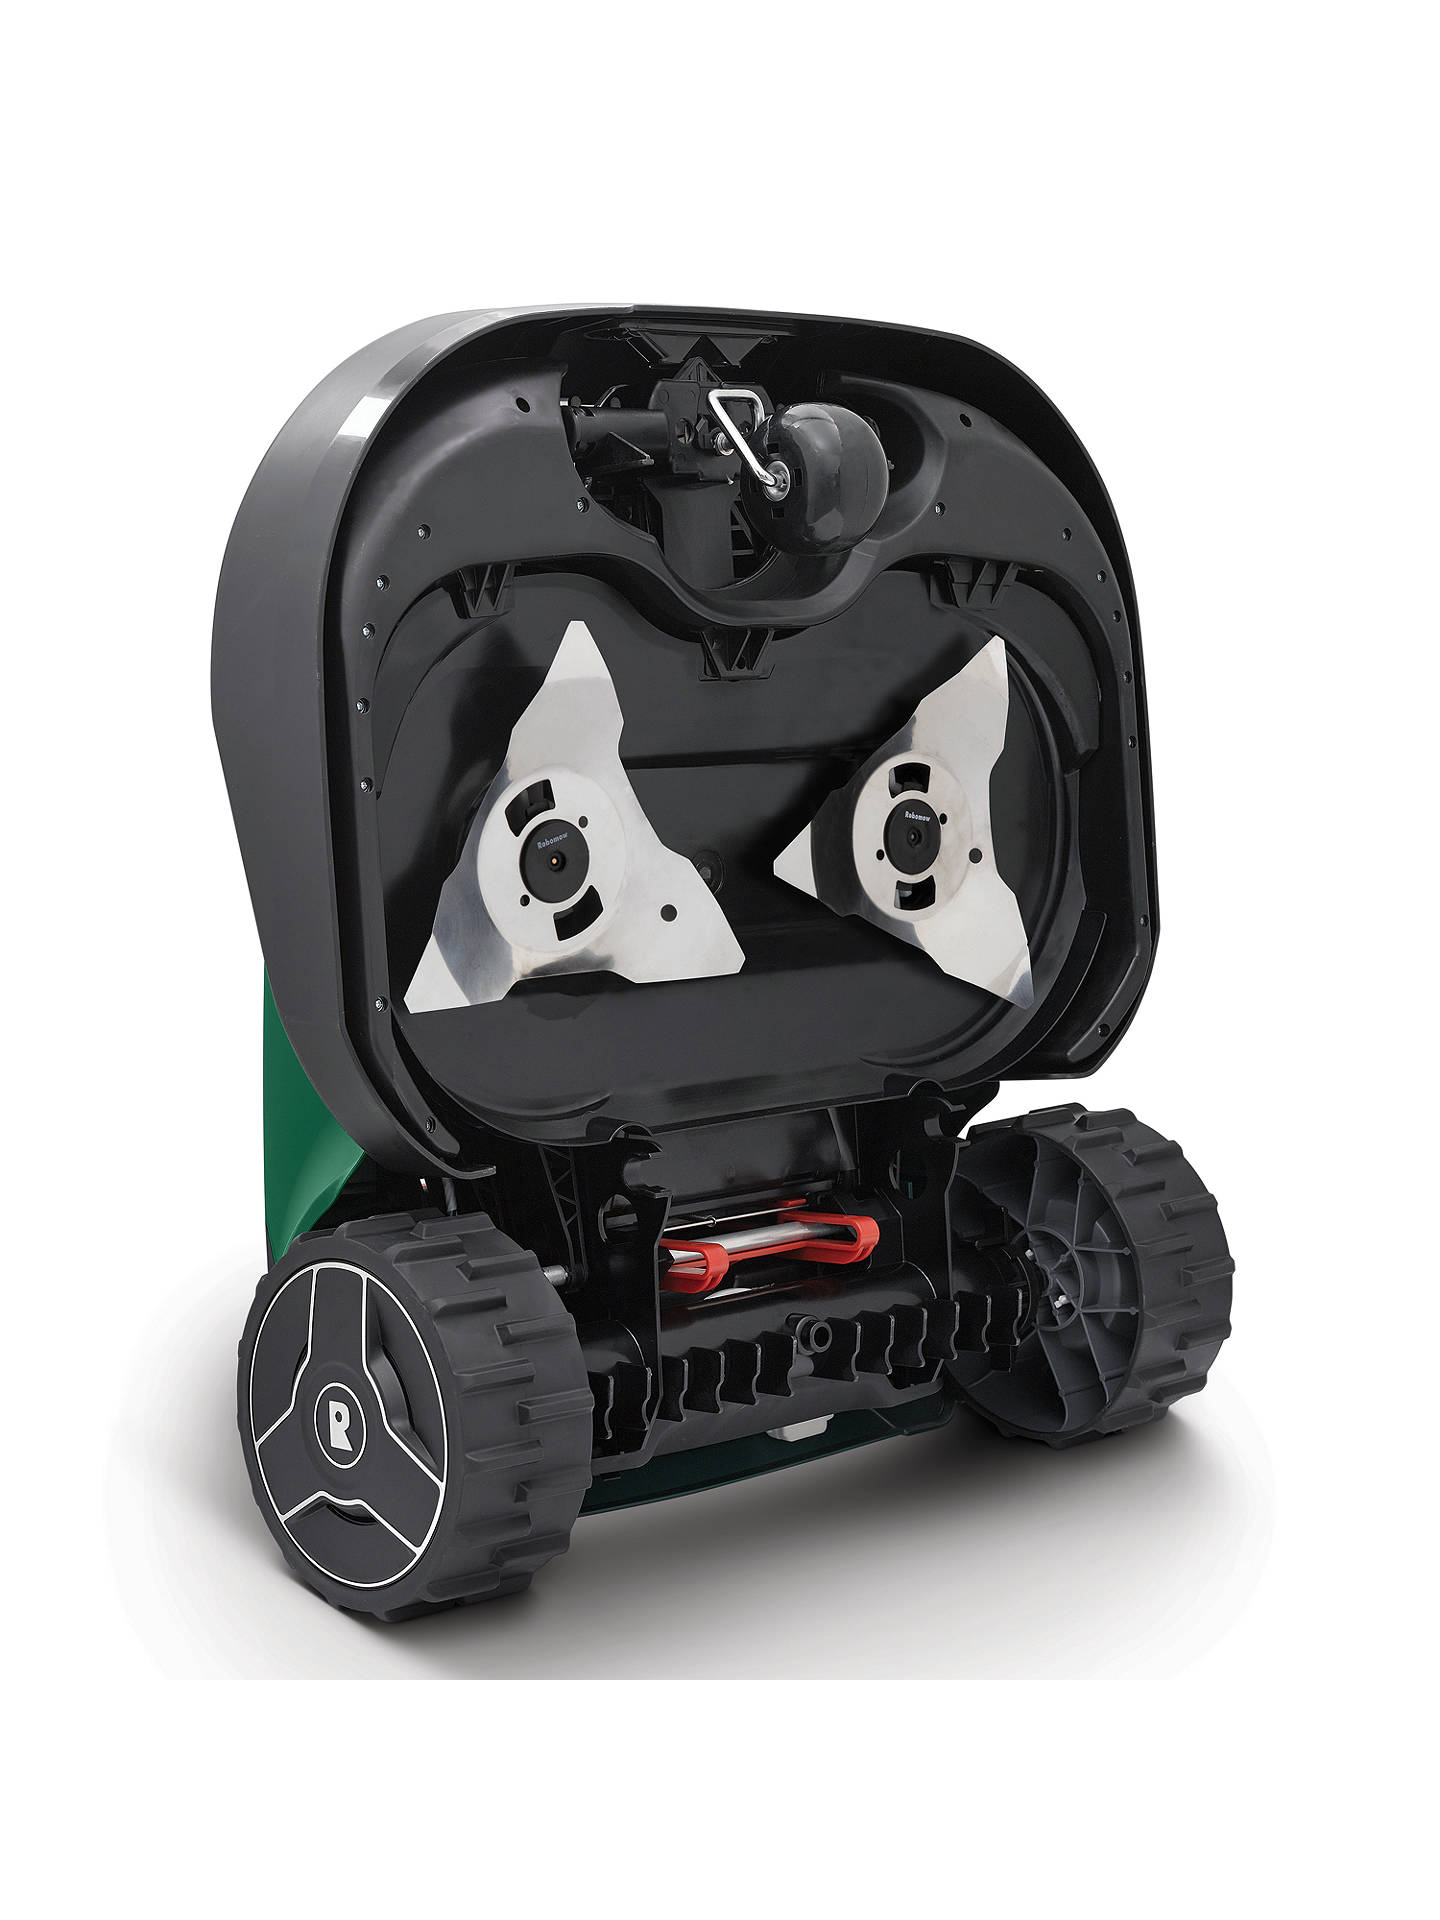 BuyRobomow RS615U Automatic Robotic Lawnmower Online at johnlewis.com